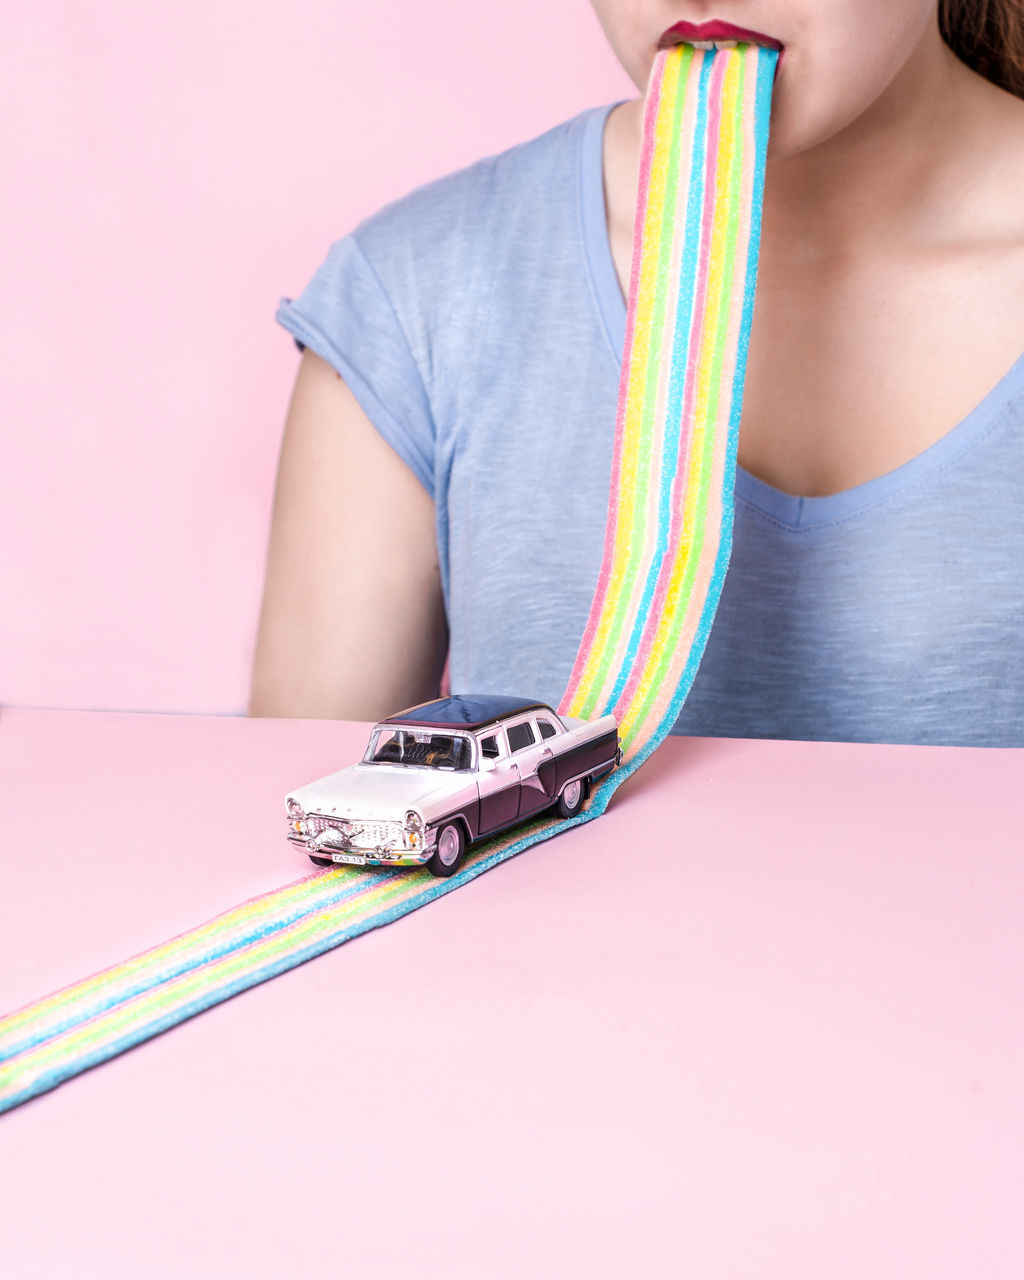 Woman With Toy Car Track In Mouth Against Pink Background